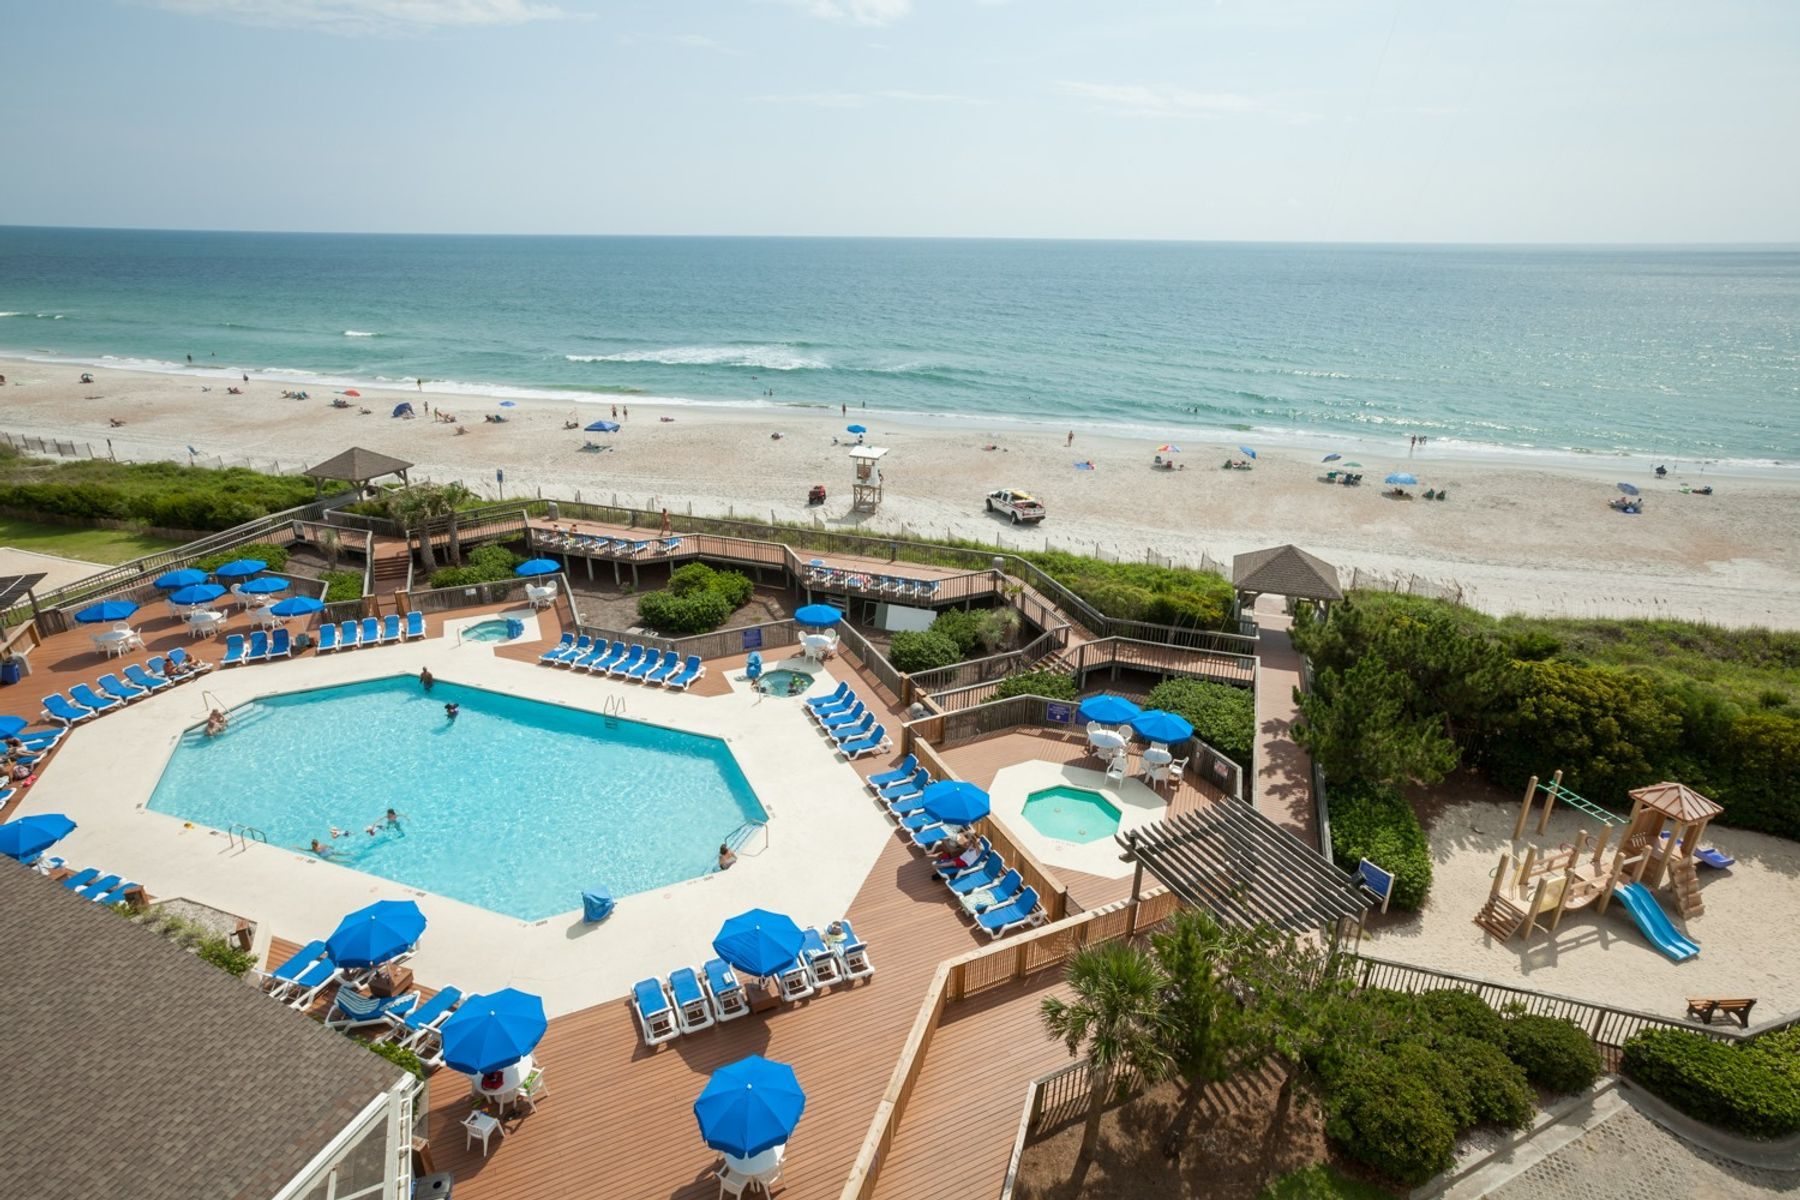 Ocean and pool view of Holiday Inn Resort Wilmington E-Wrightsville Beach.